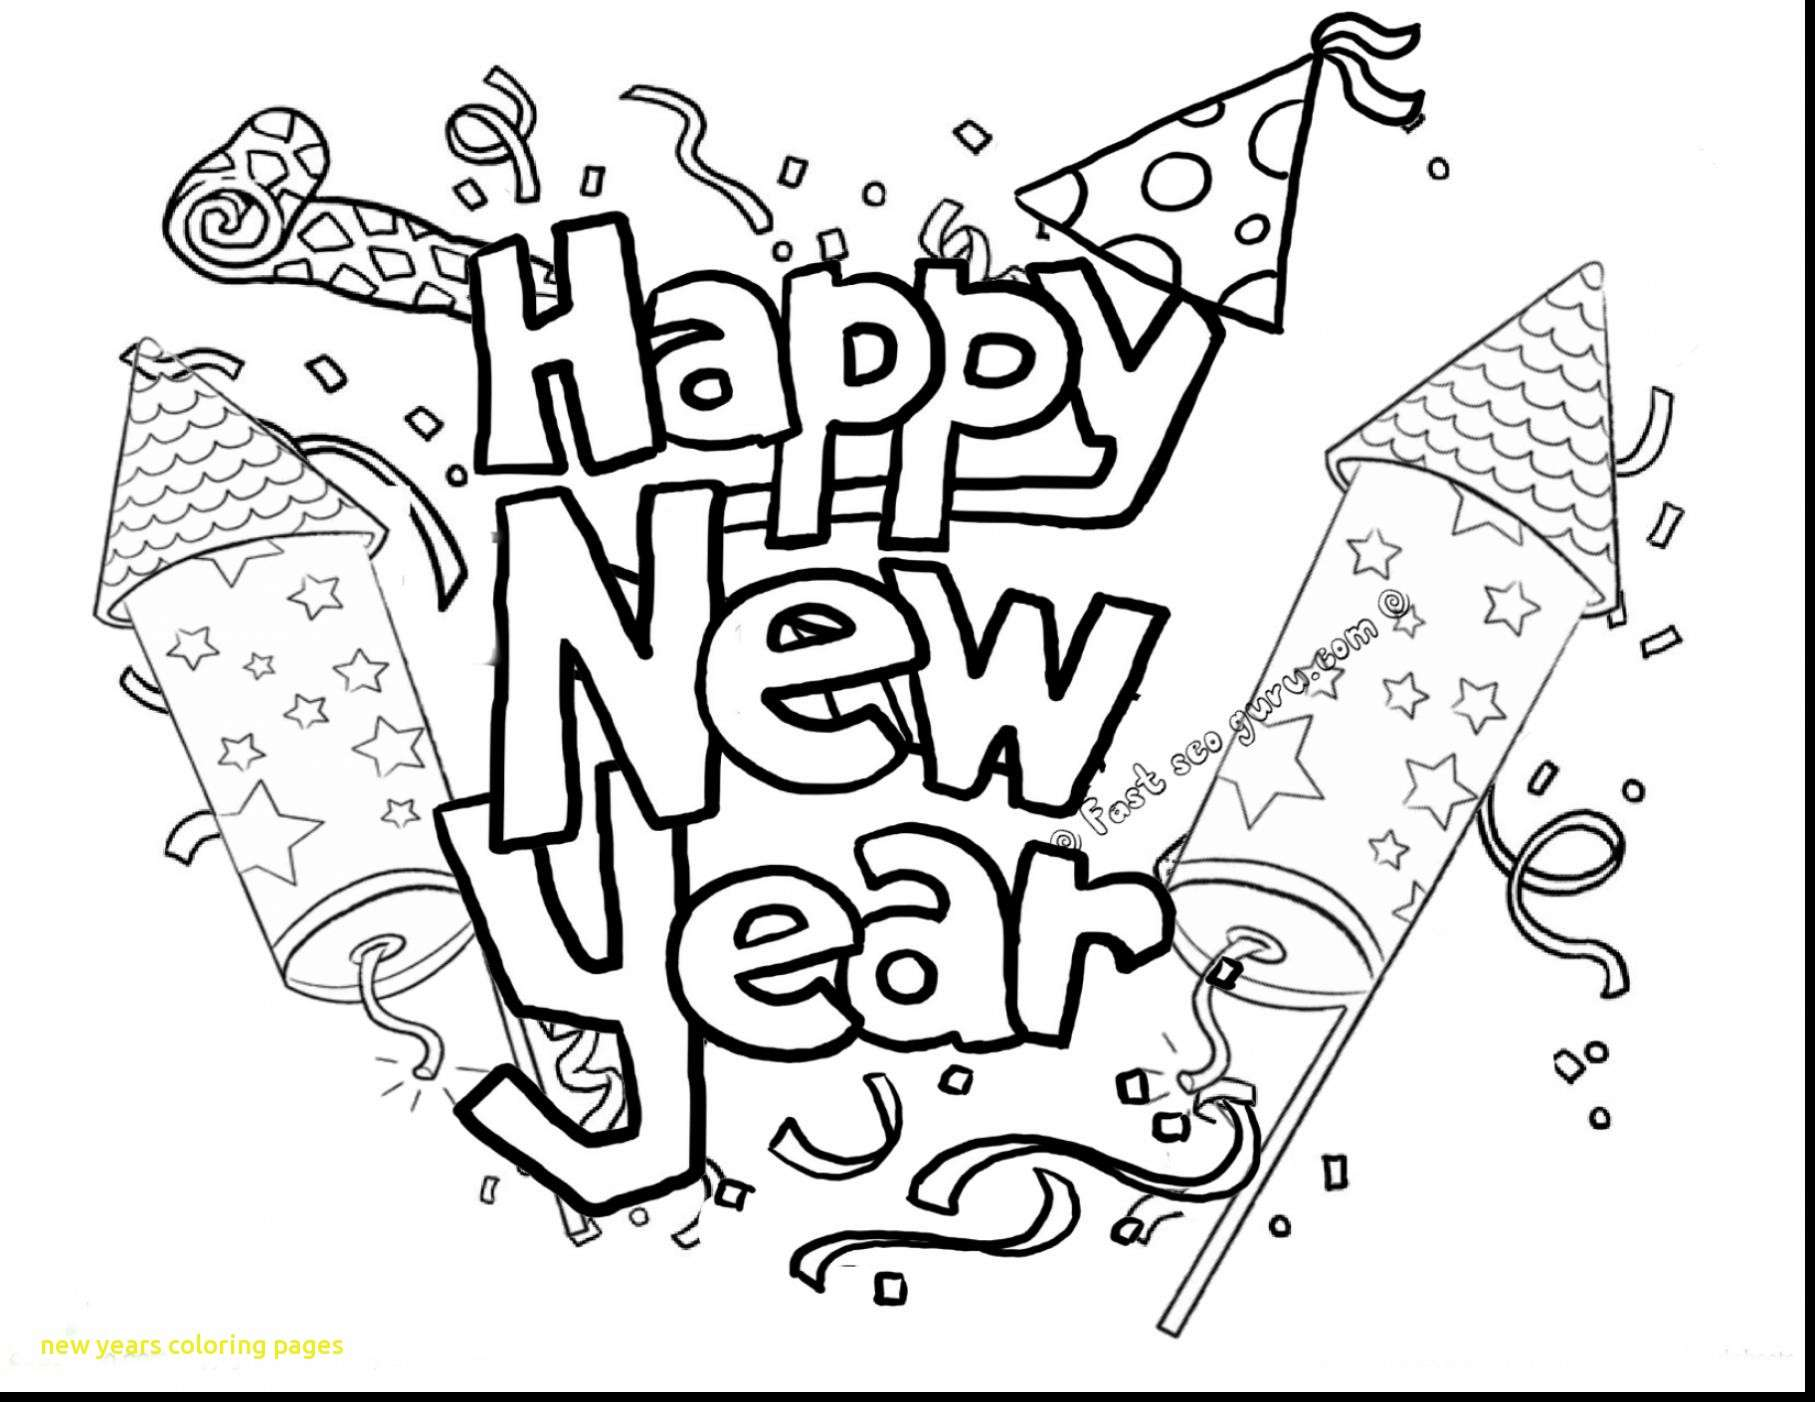 Merry Christmas And Happy New Year Coloring Pages With Free Printable Chinese